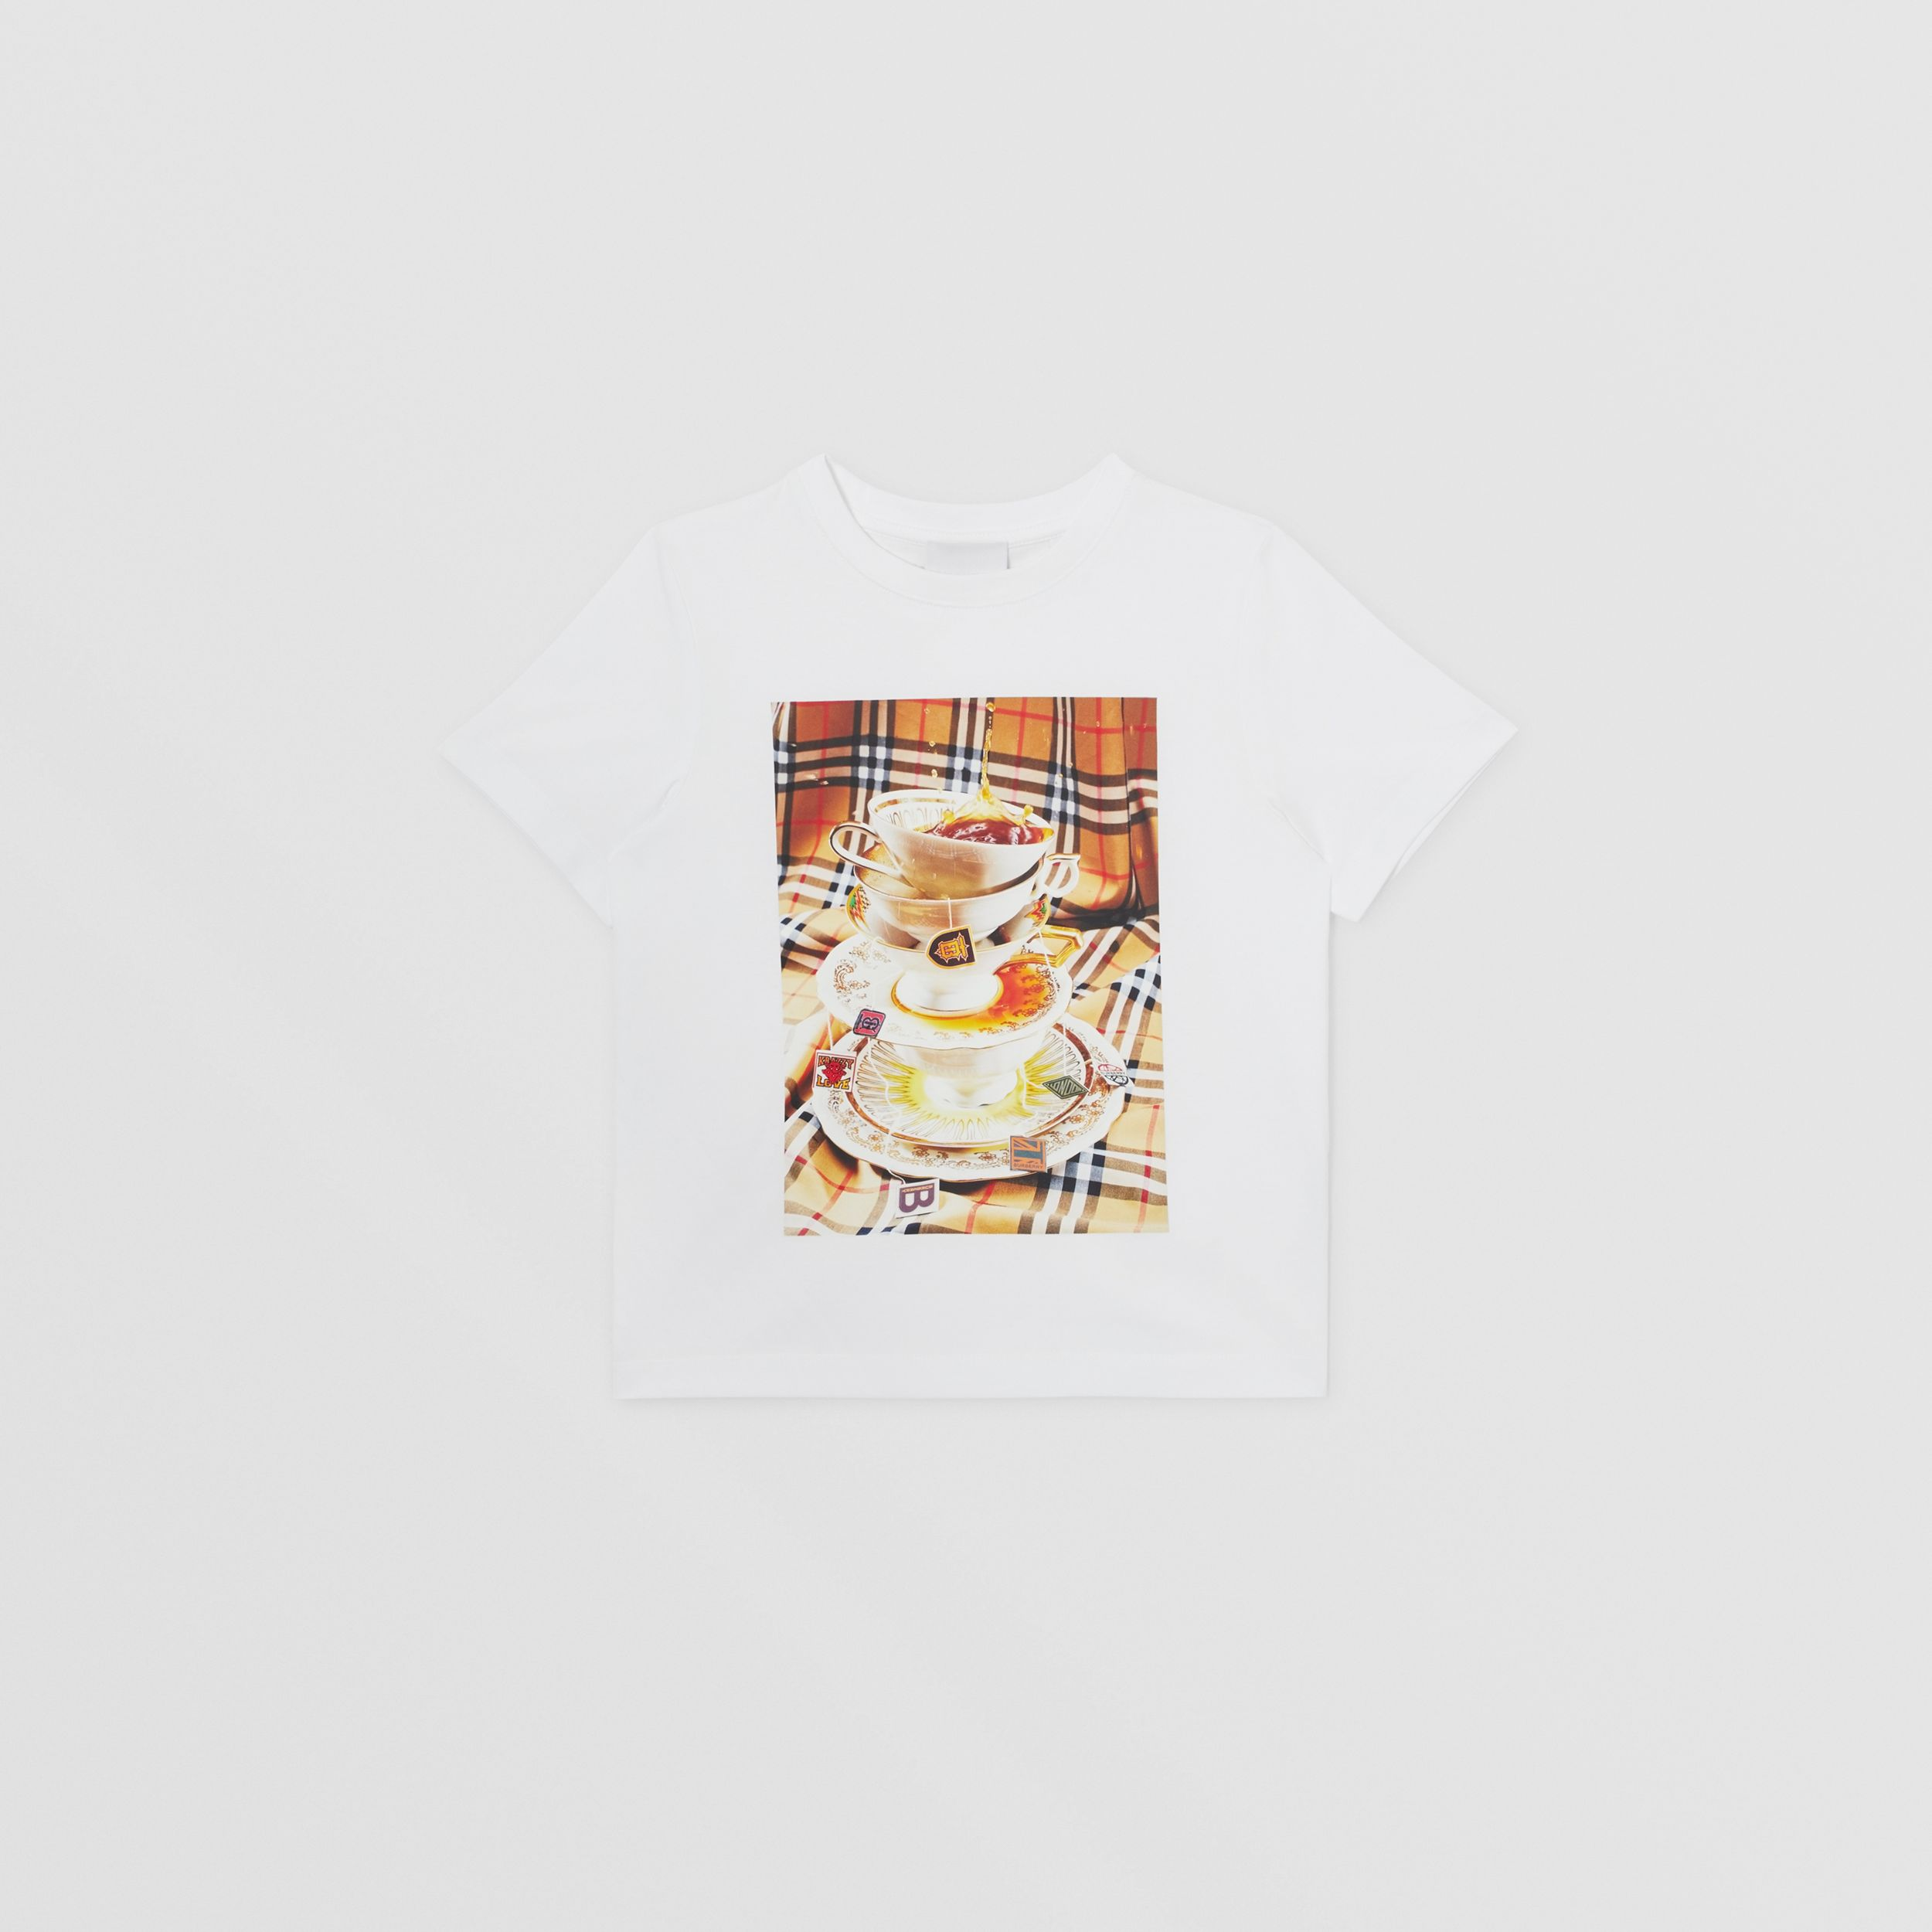 Teacup Print T-shirt in Multicolour | Burberry Singapore - 1